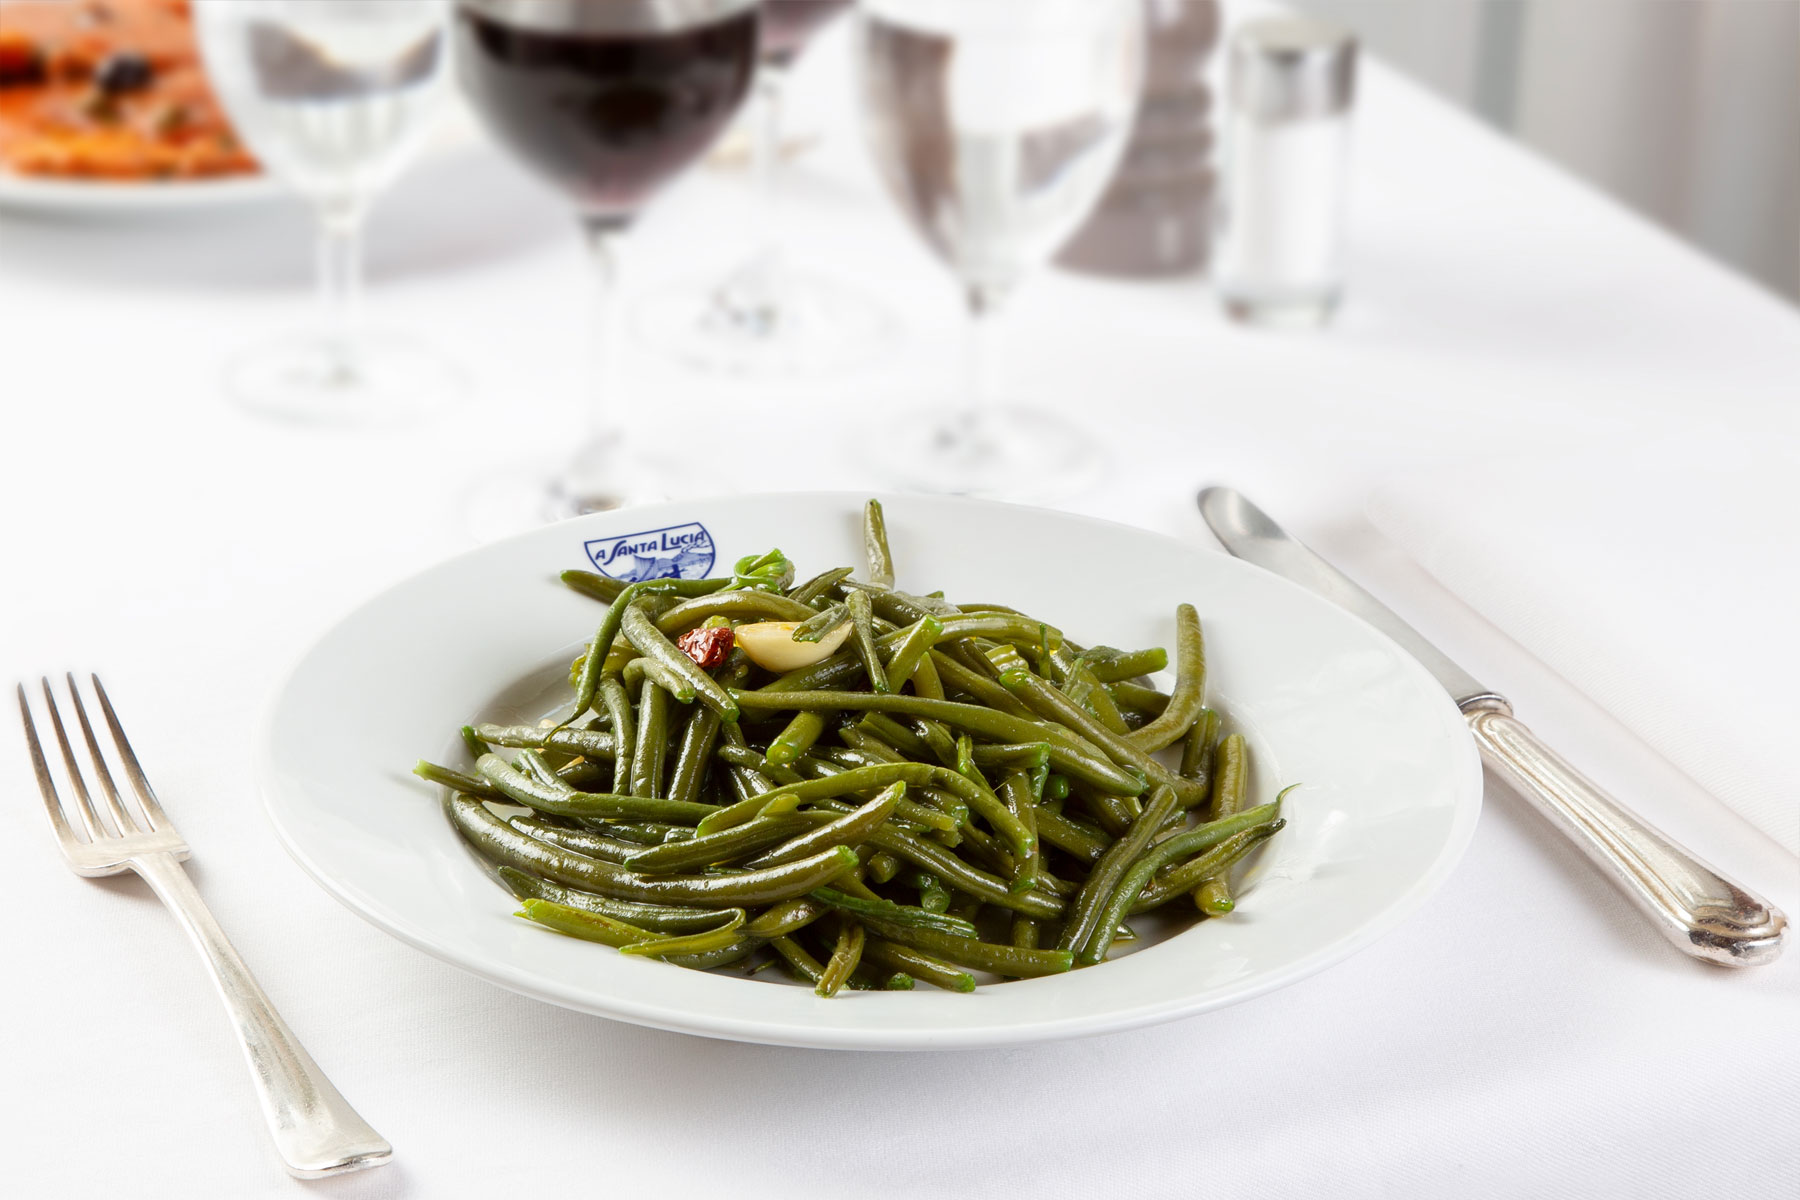 Green beans sauteed with garlic, oil, chili